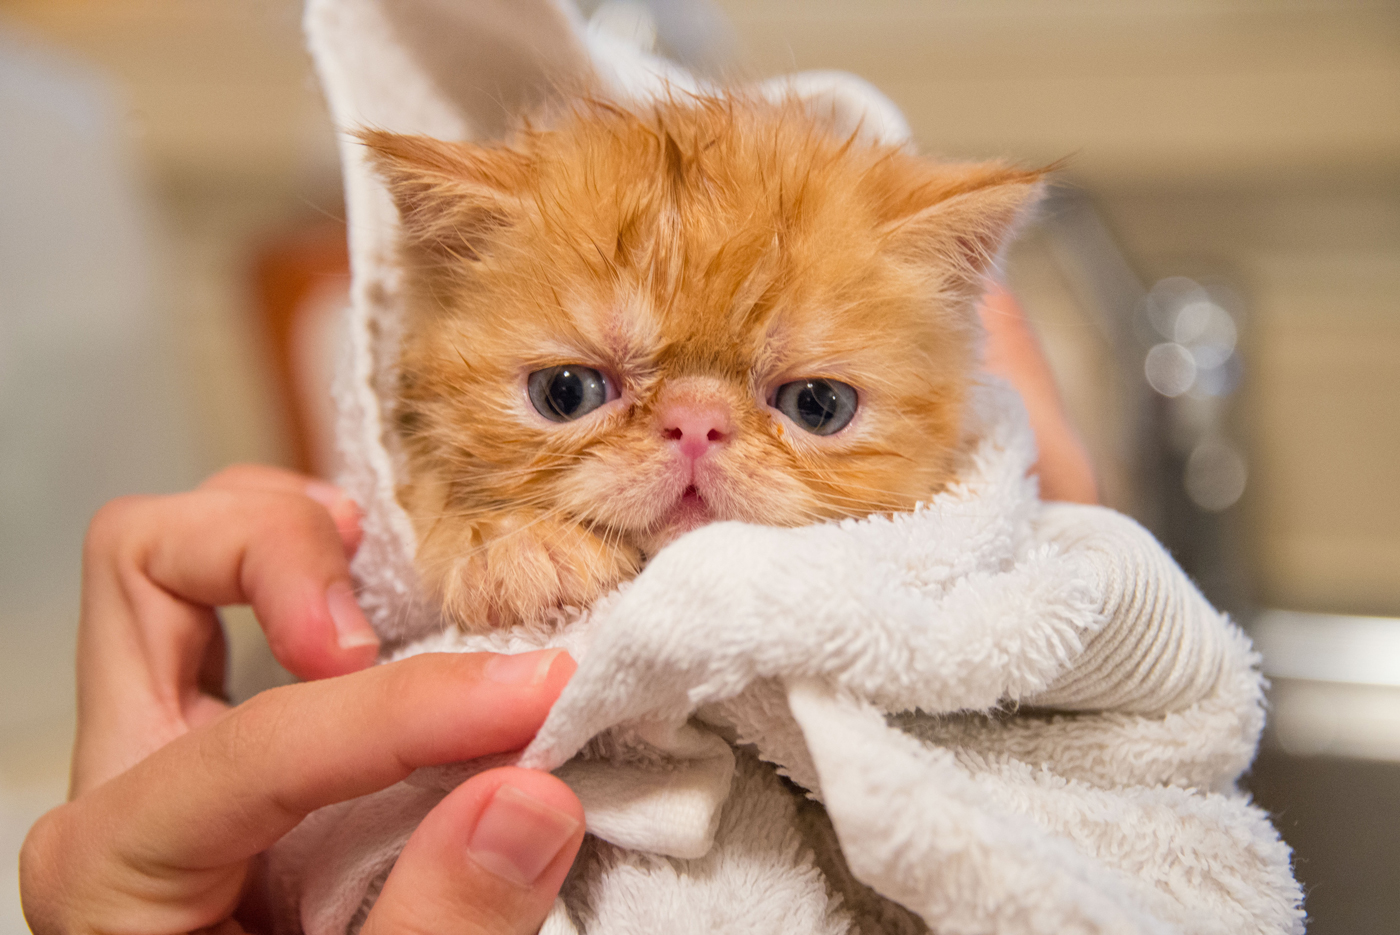 A kitten wrapped up in a towel